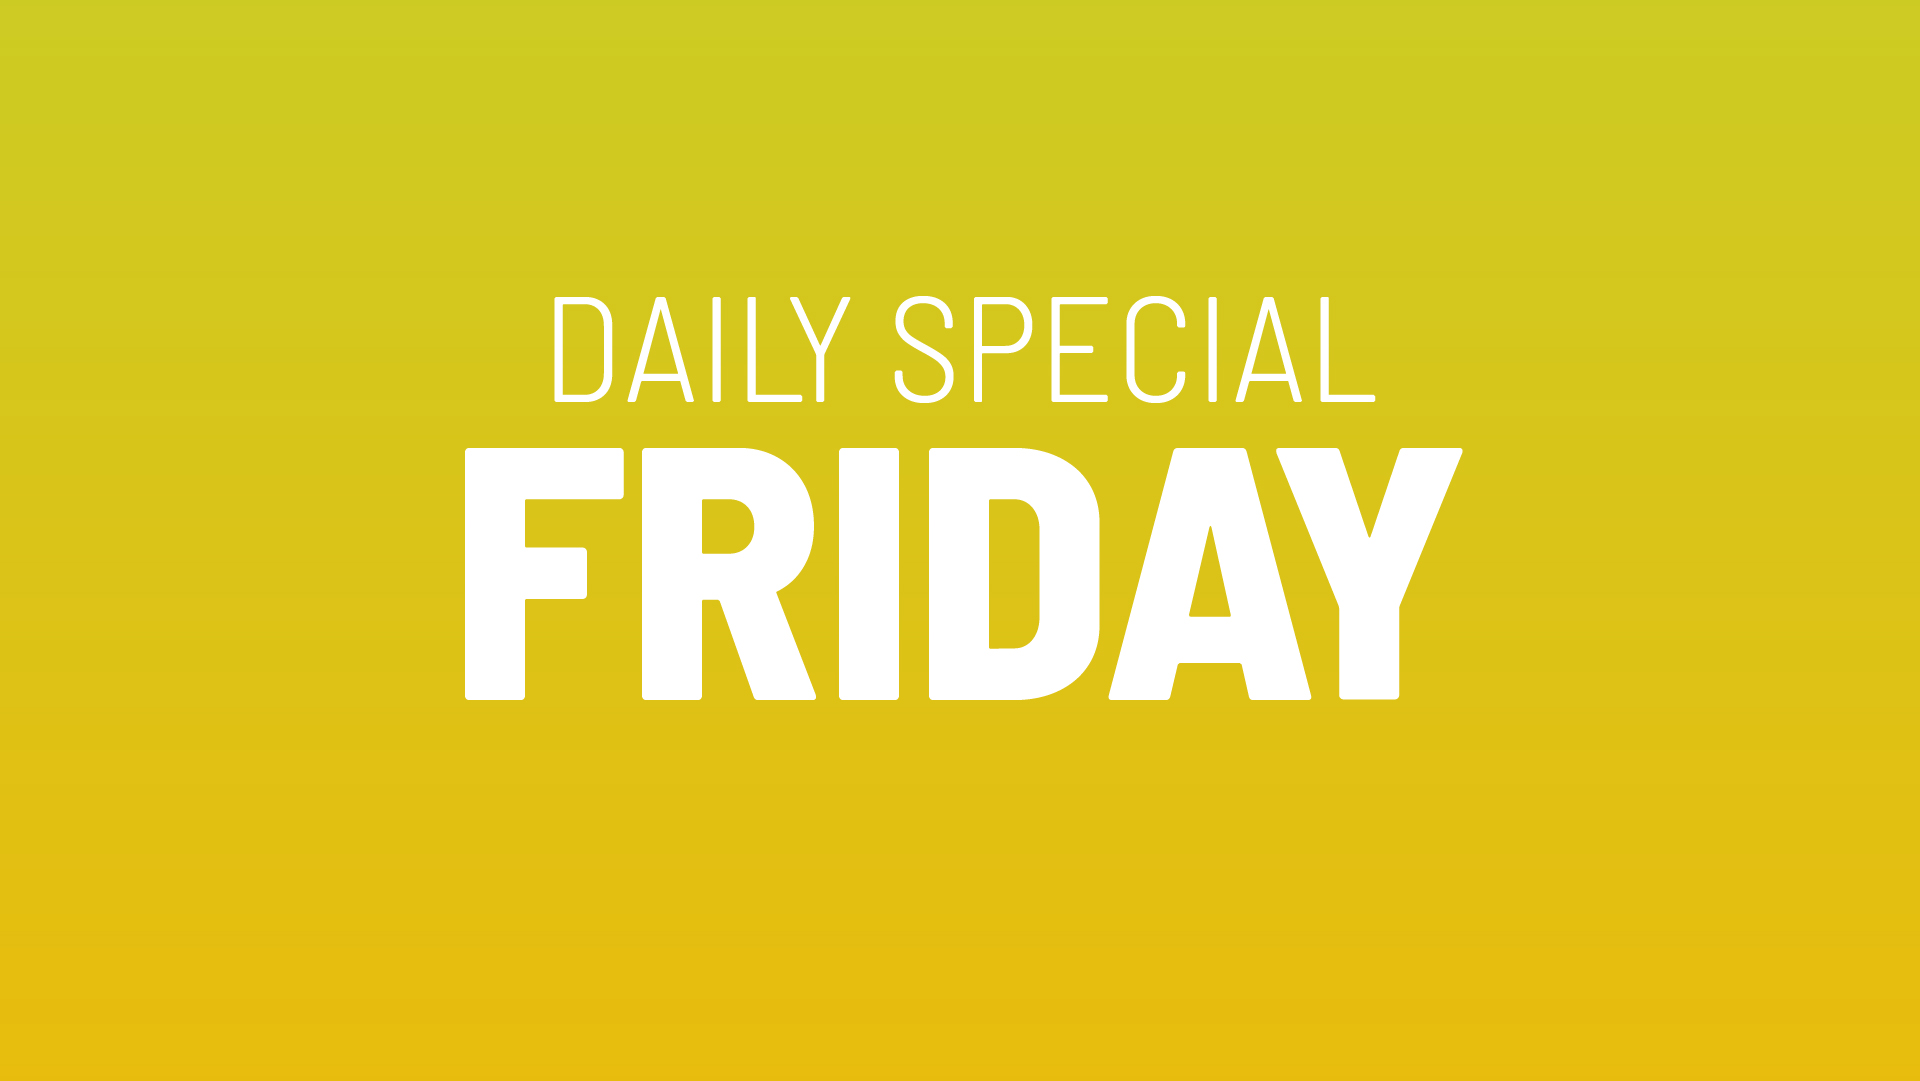 Friday's Daily Special